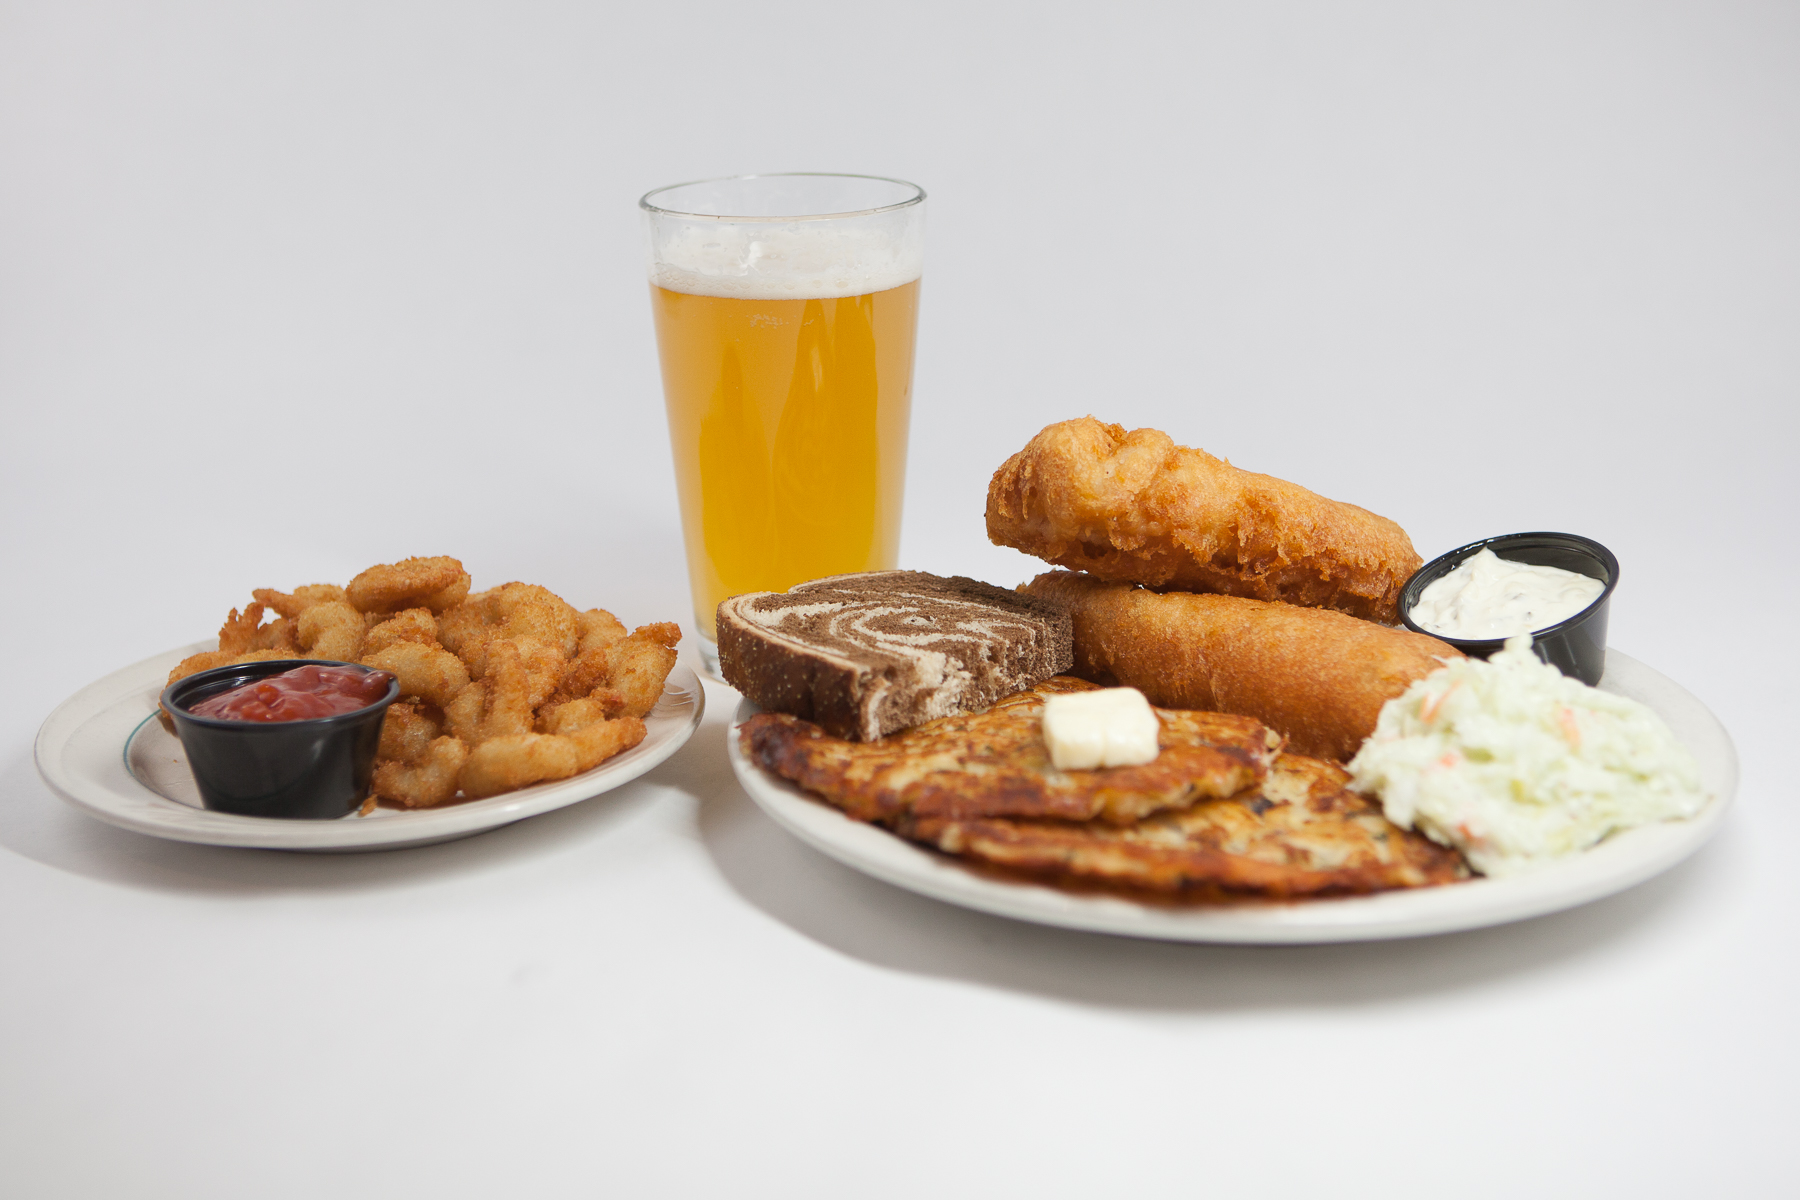 Food Photography for Tula's Northwoods Cafe - Fish